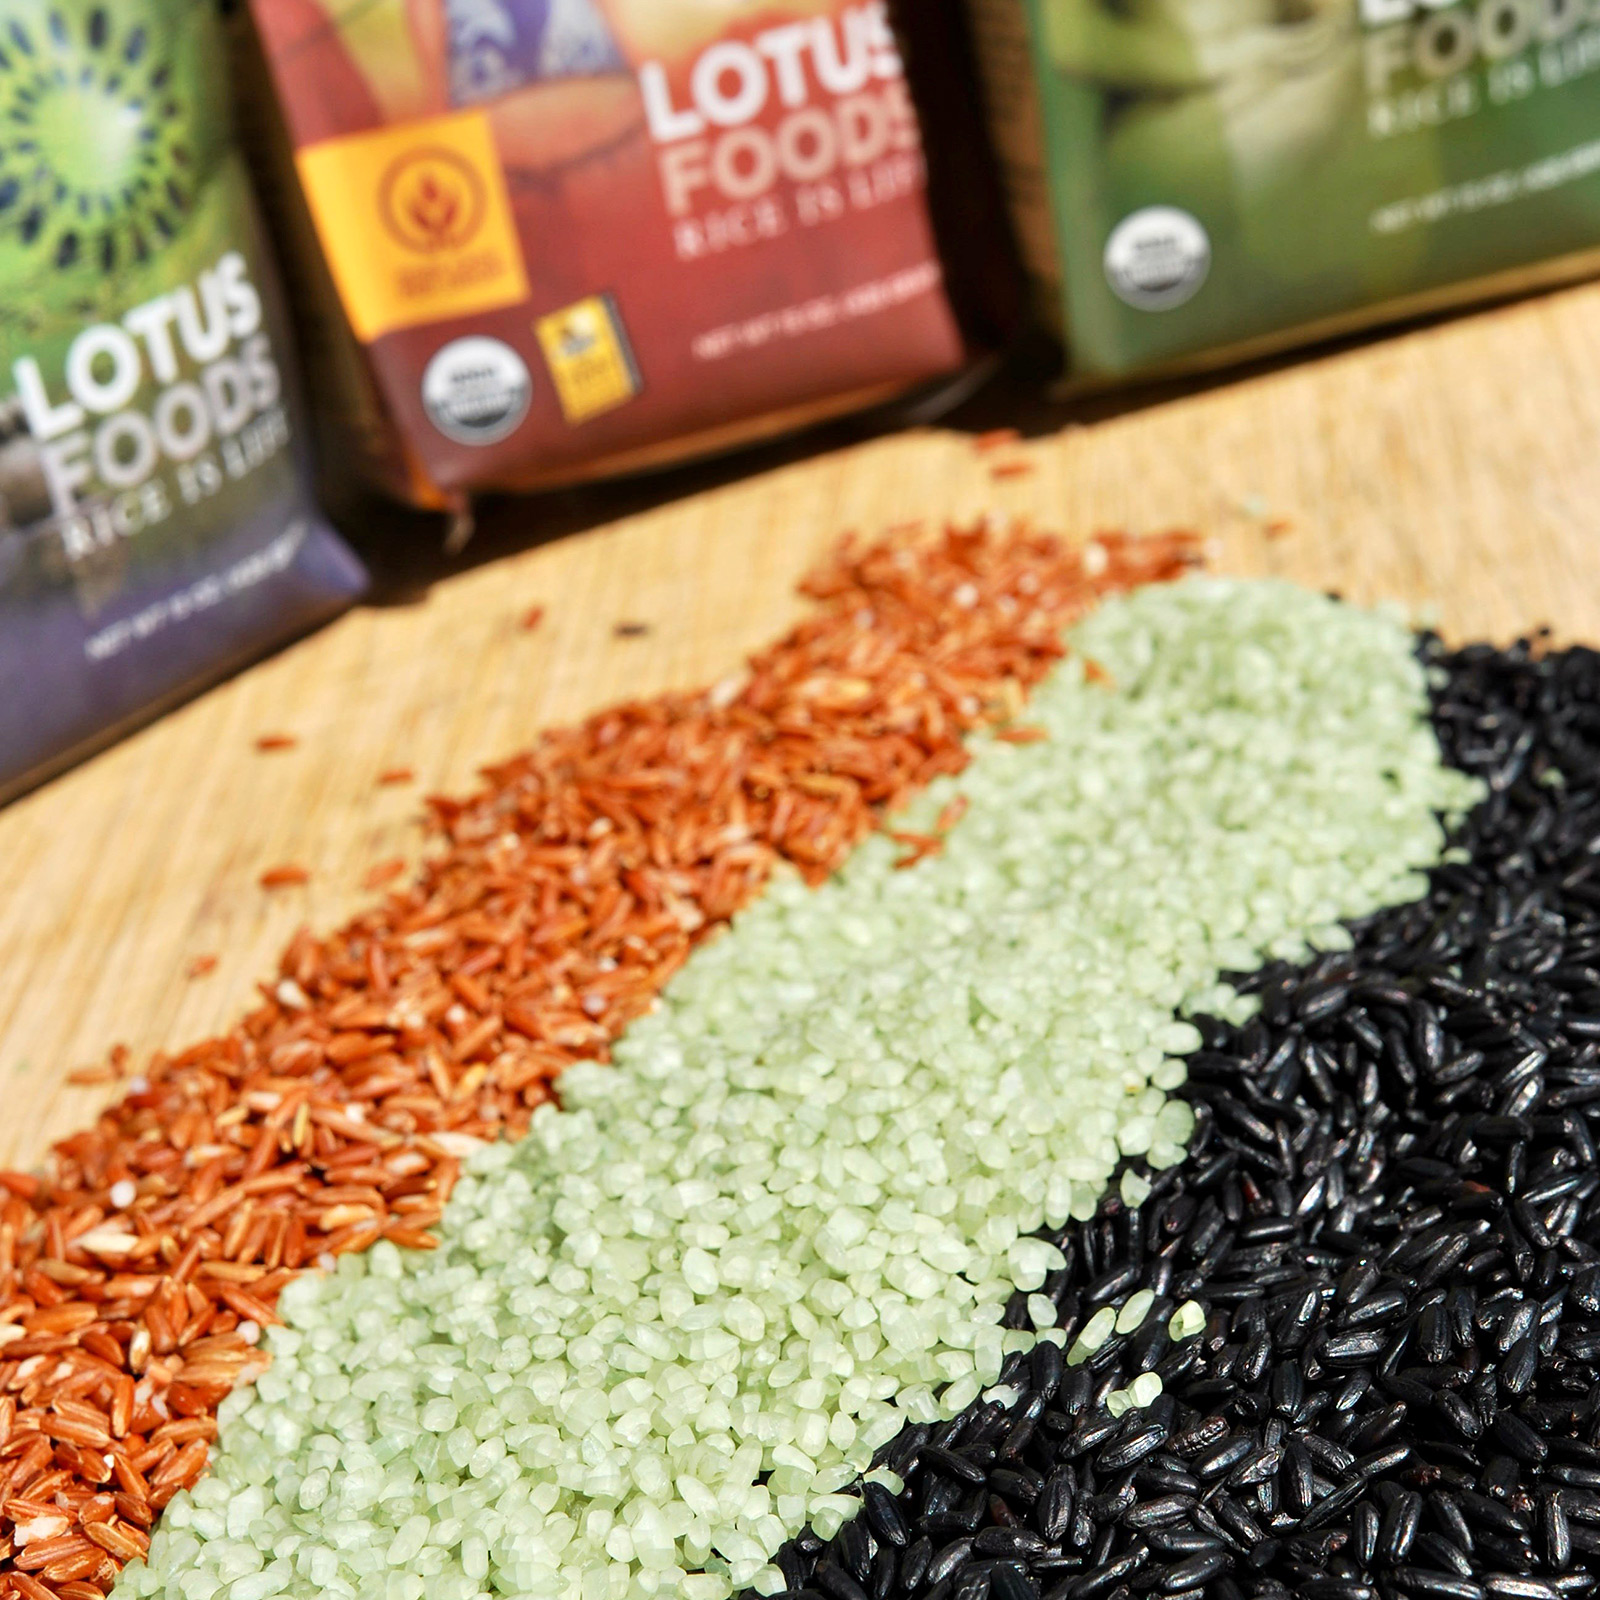 Red, white and black varieties of Lotus Foods rice.